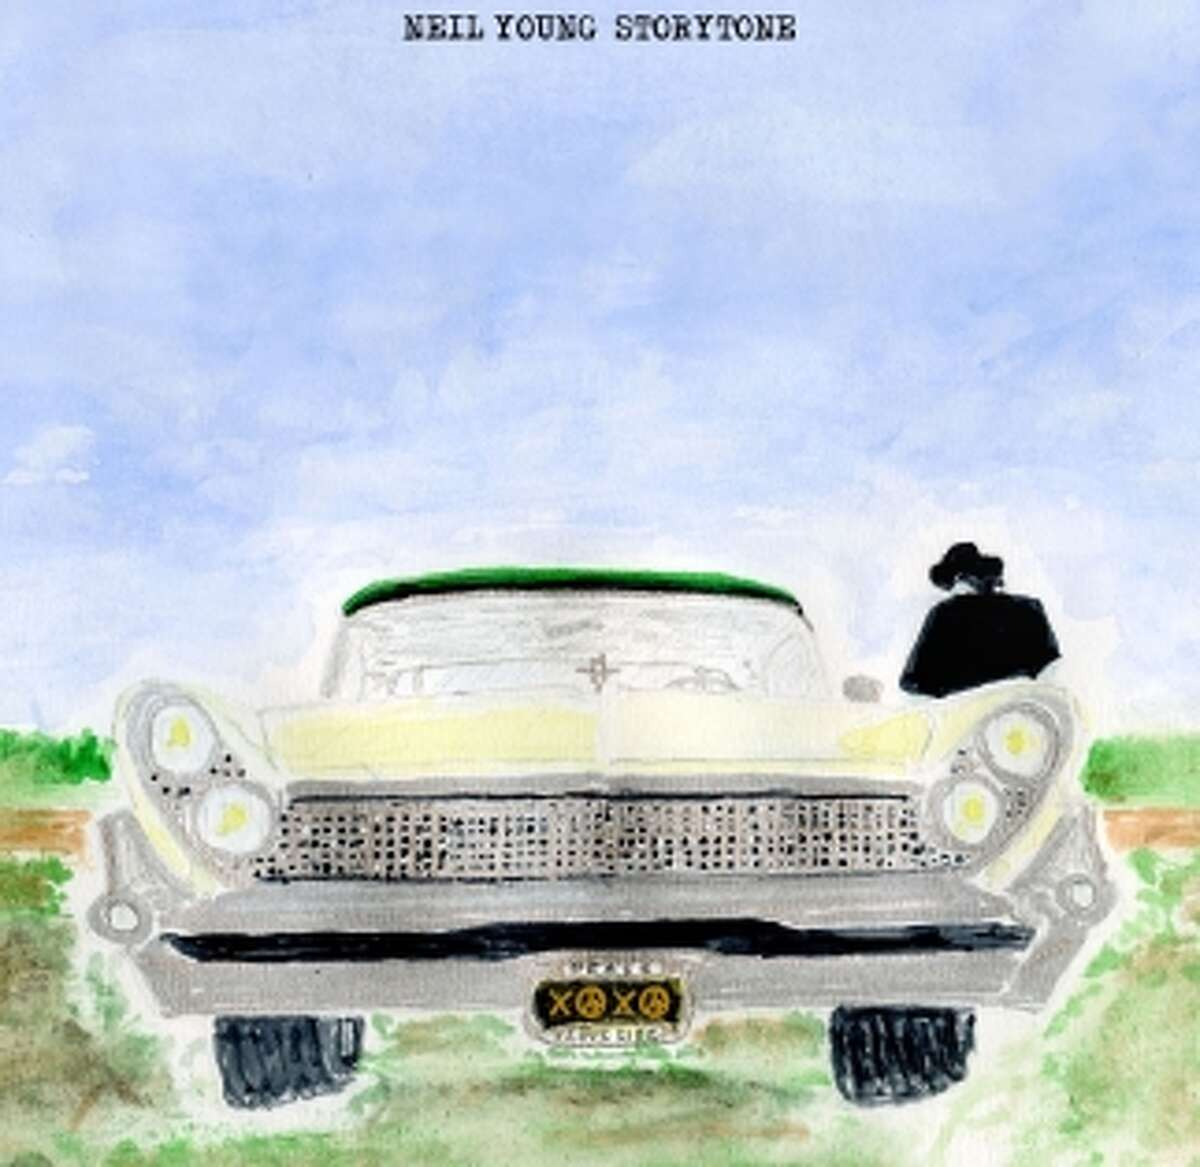 """Neil Young, """"Storytone"""""""